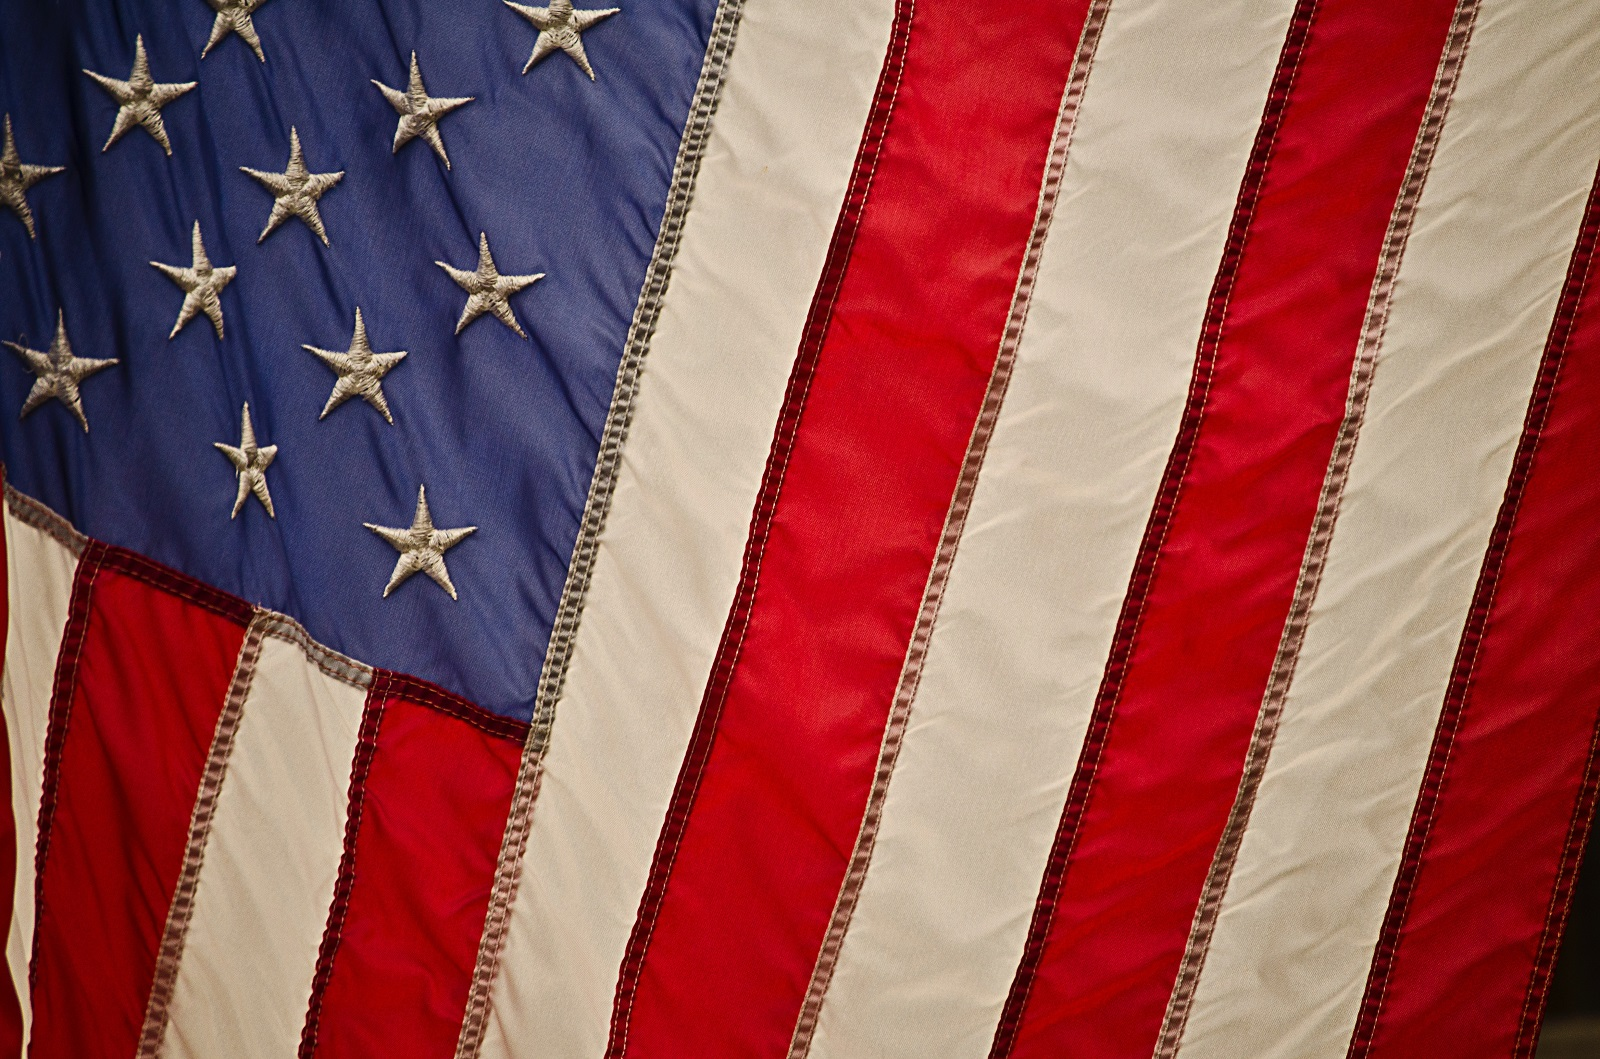 An up-close photo of a section of the American flag